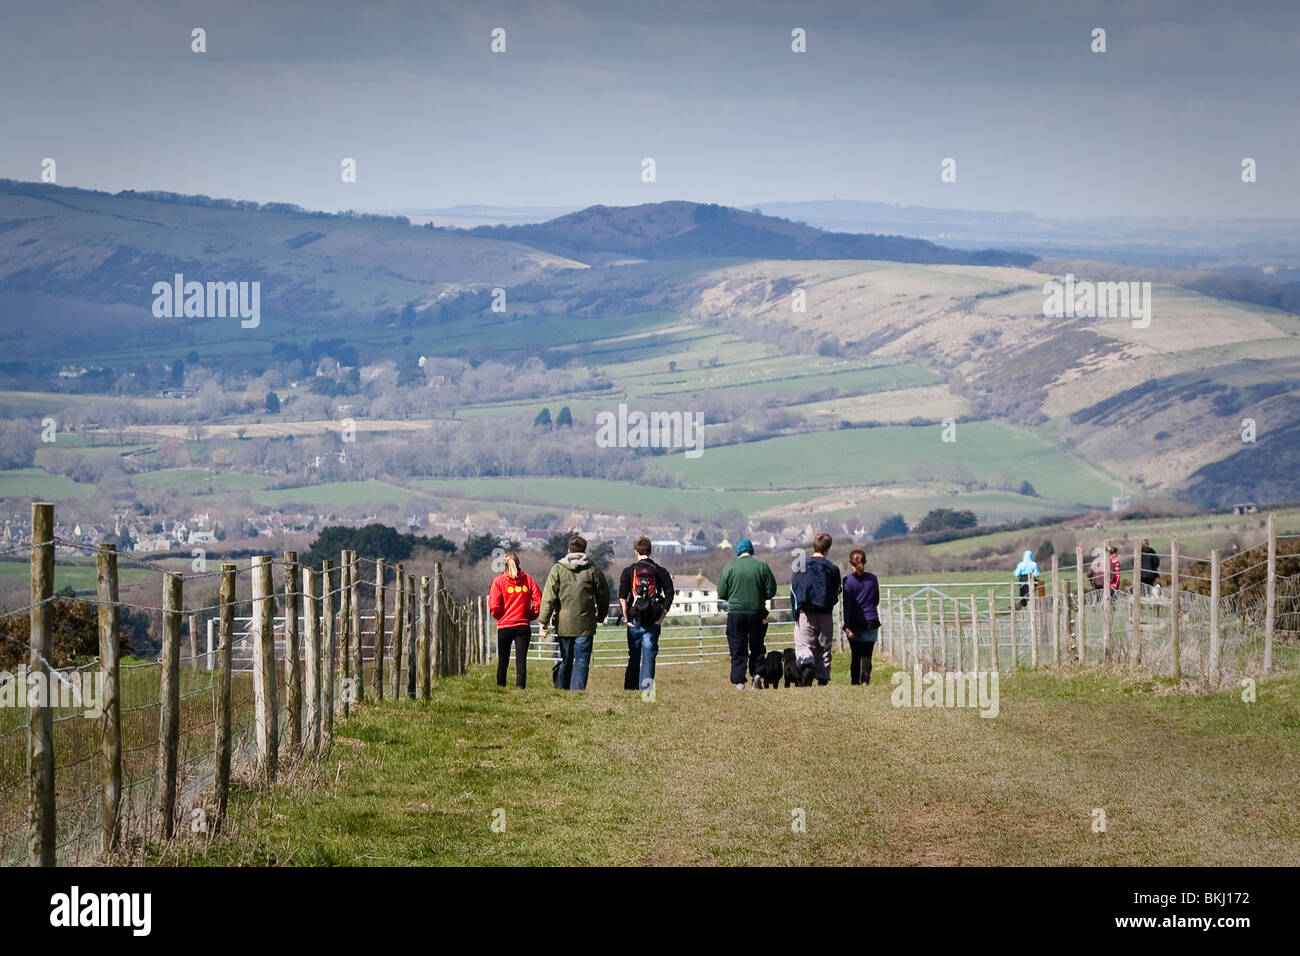 Walkers on Nine-barrow Down in the Purbeck Hills. - Stock Image